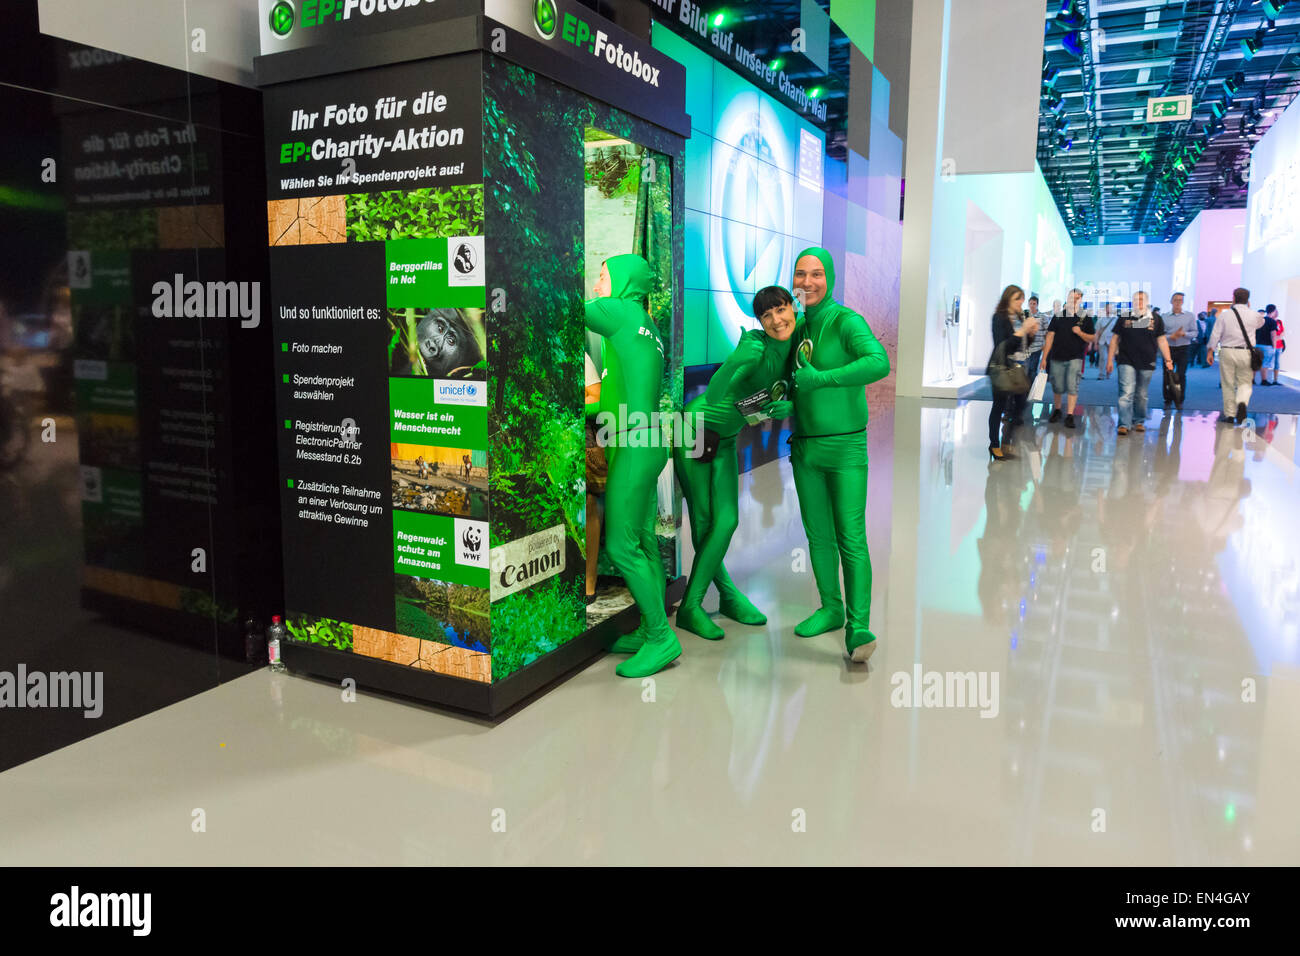 Promoters of the exhibition. - Stock Image